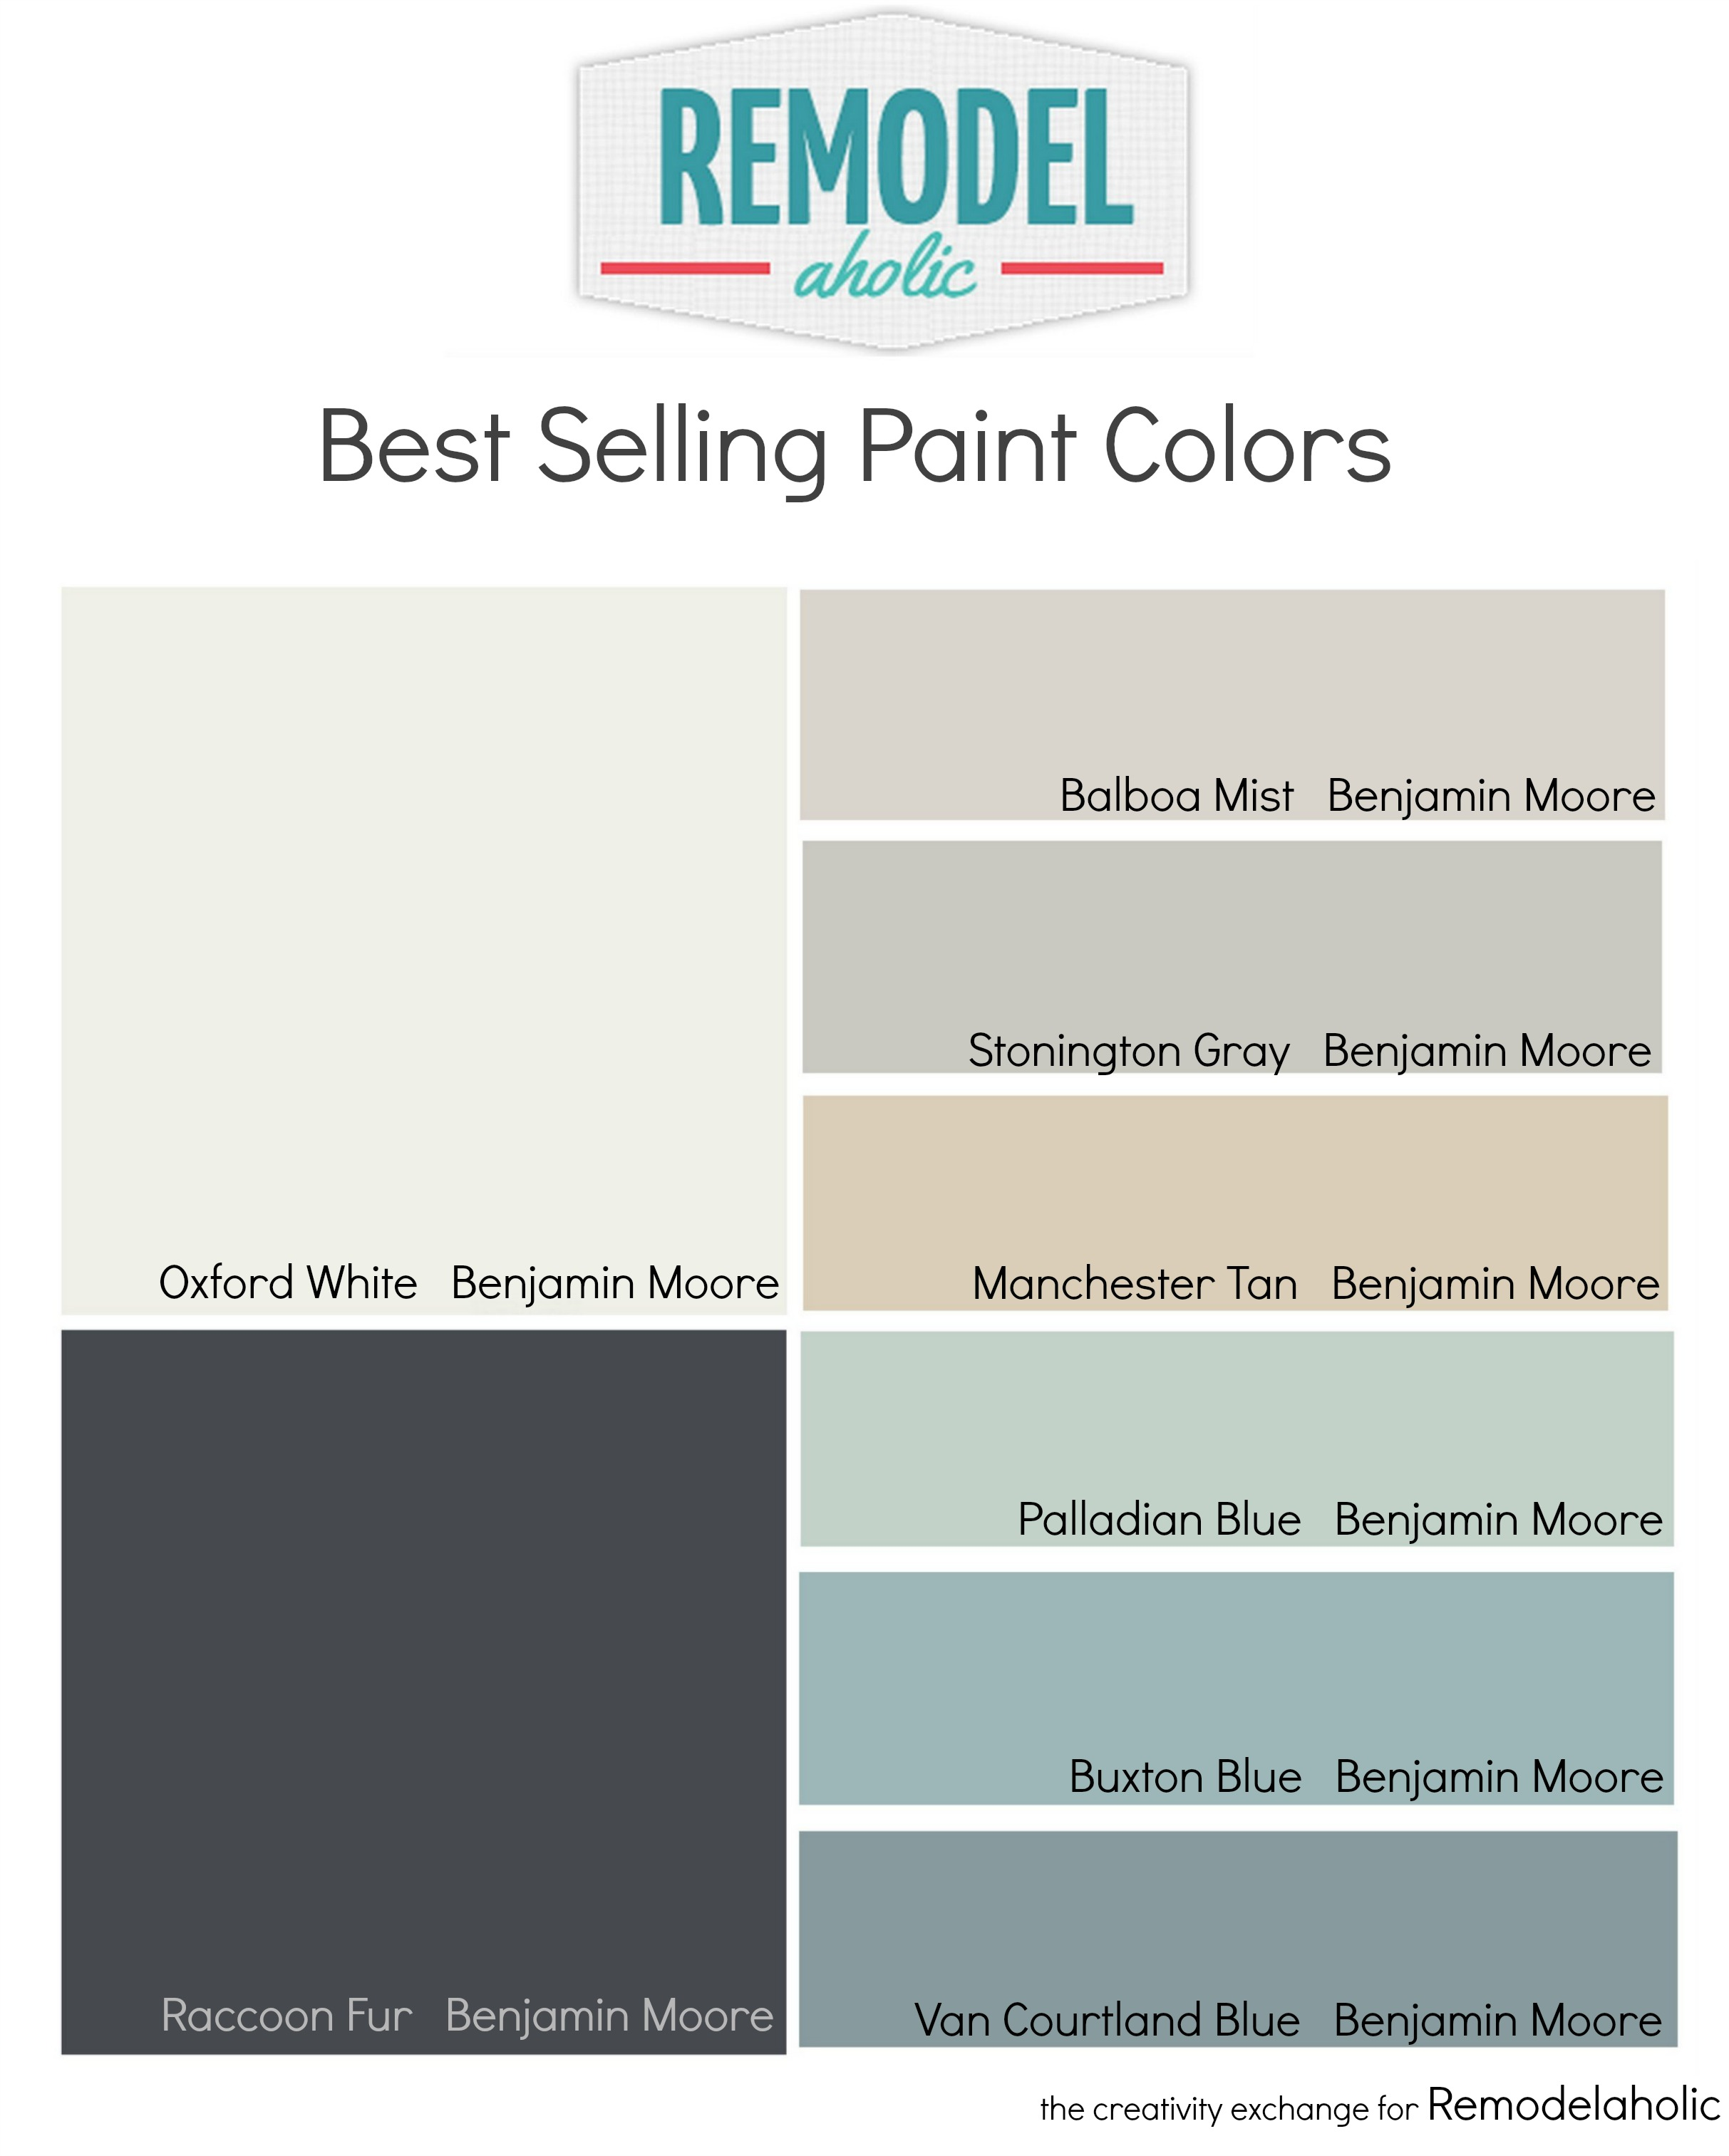 Most Popular Paint Colors Gorgeous Remodelaholic  Most Popular And Best Selling Paint Colors Decorating Design